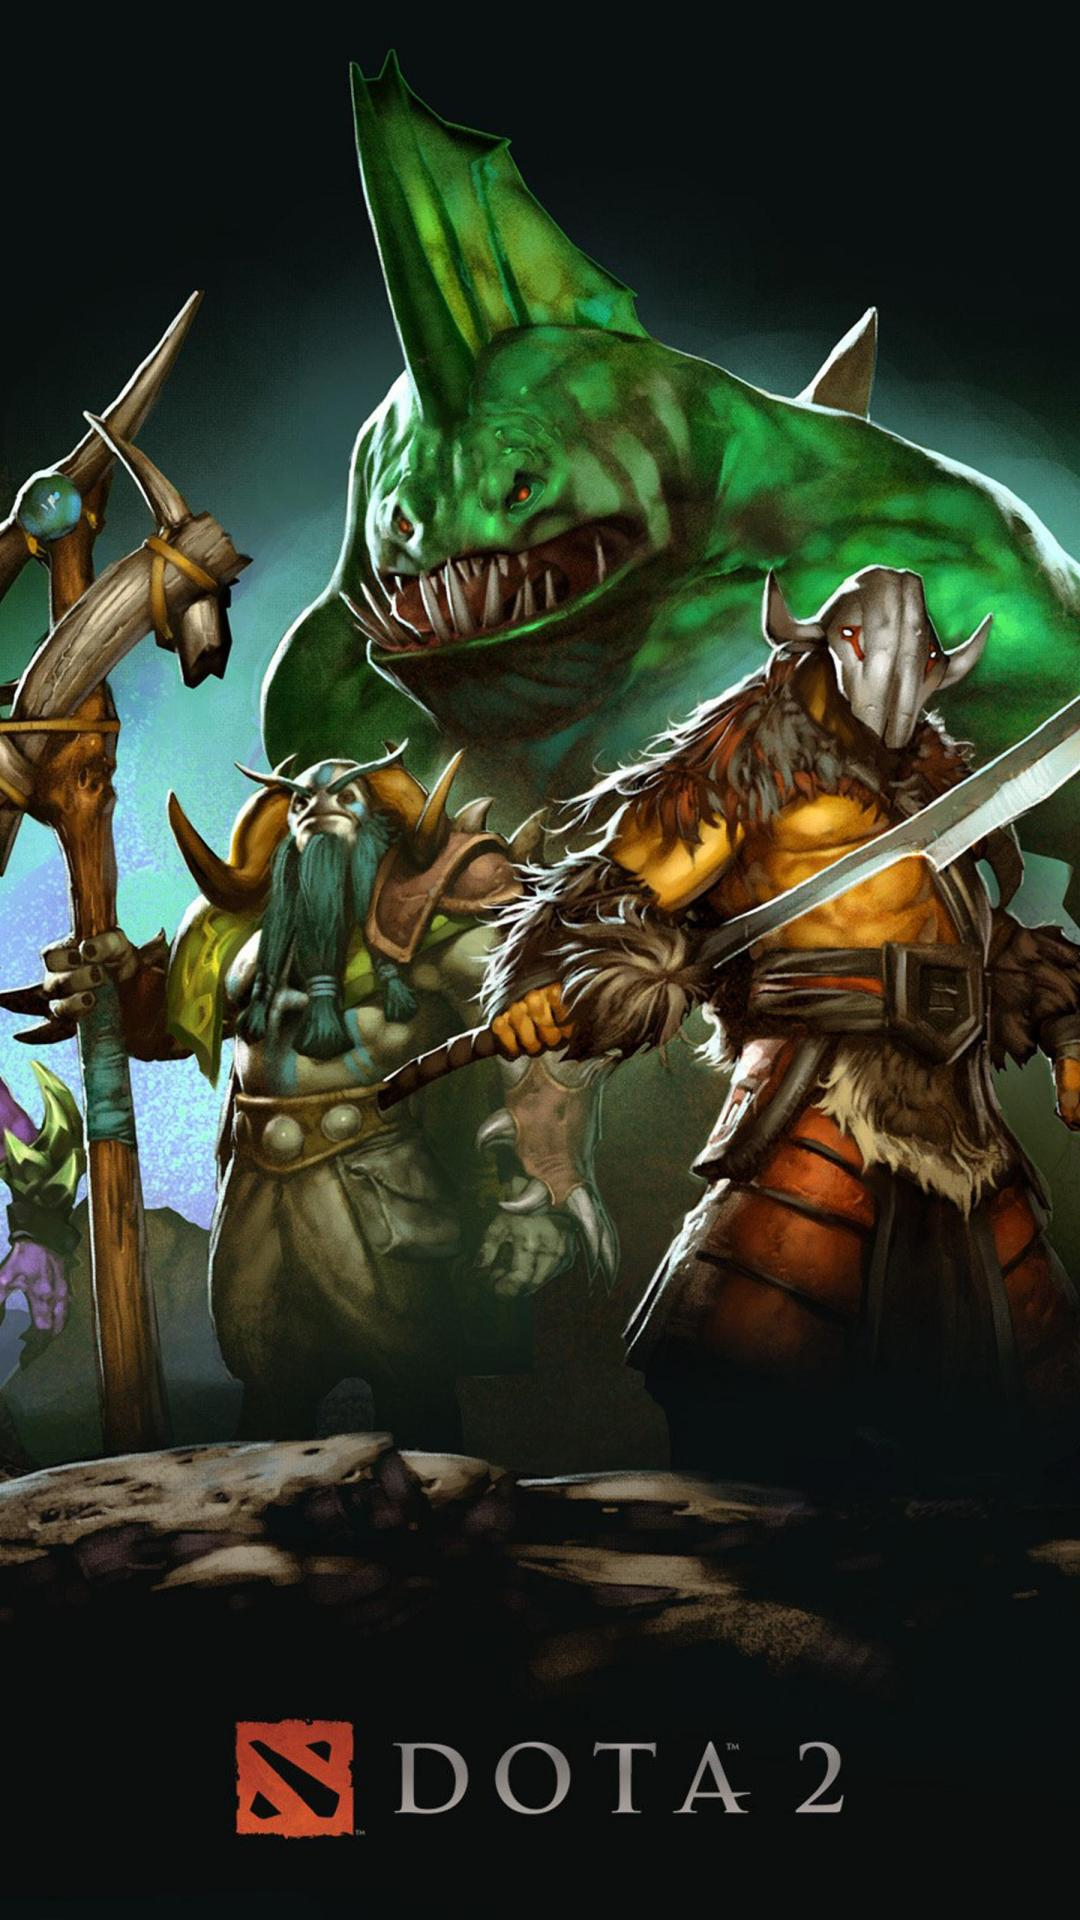 Dota 2 01 android wallpaper android hd wallpapers voltagebd Image collections